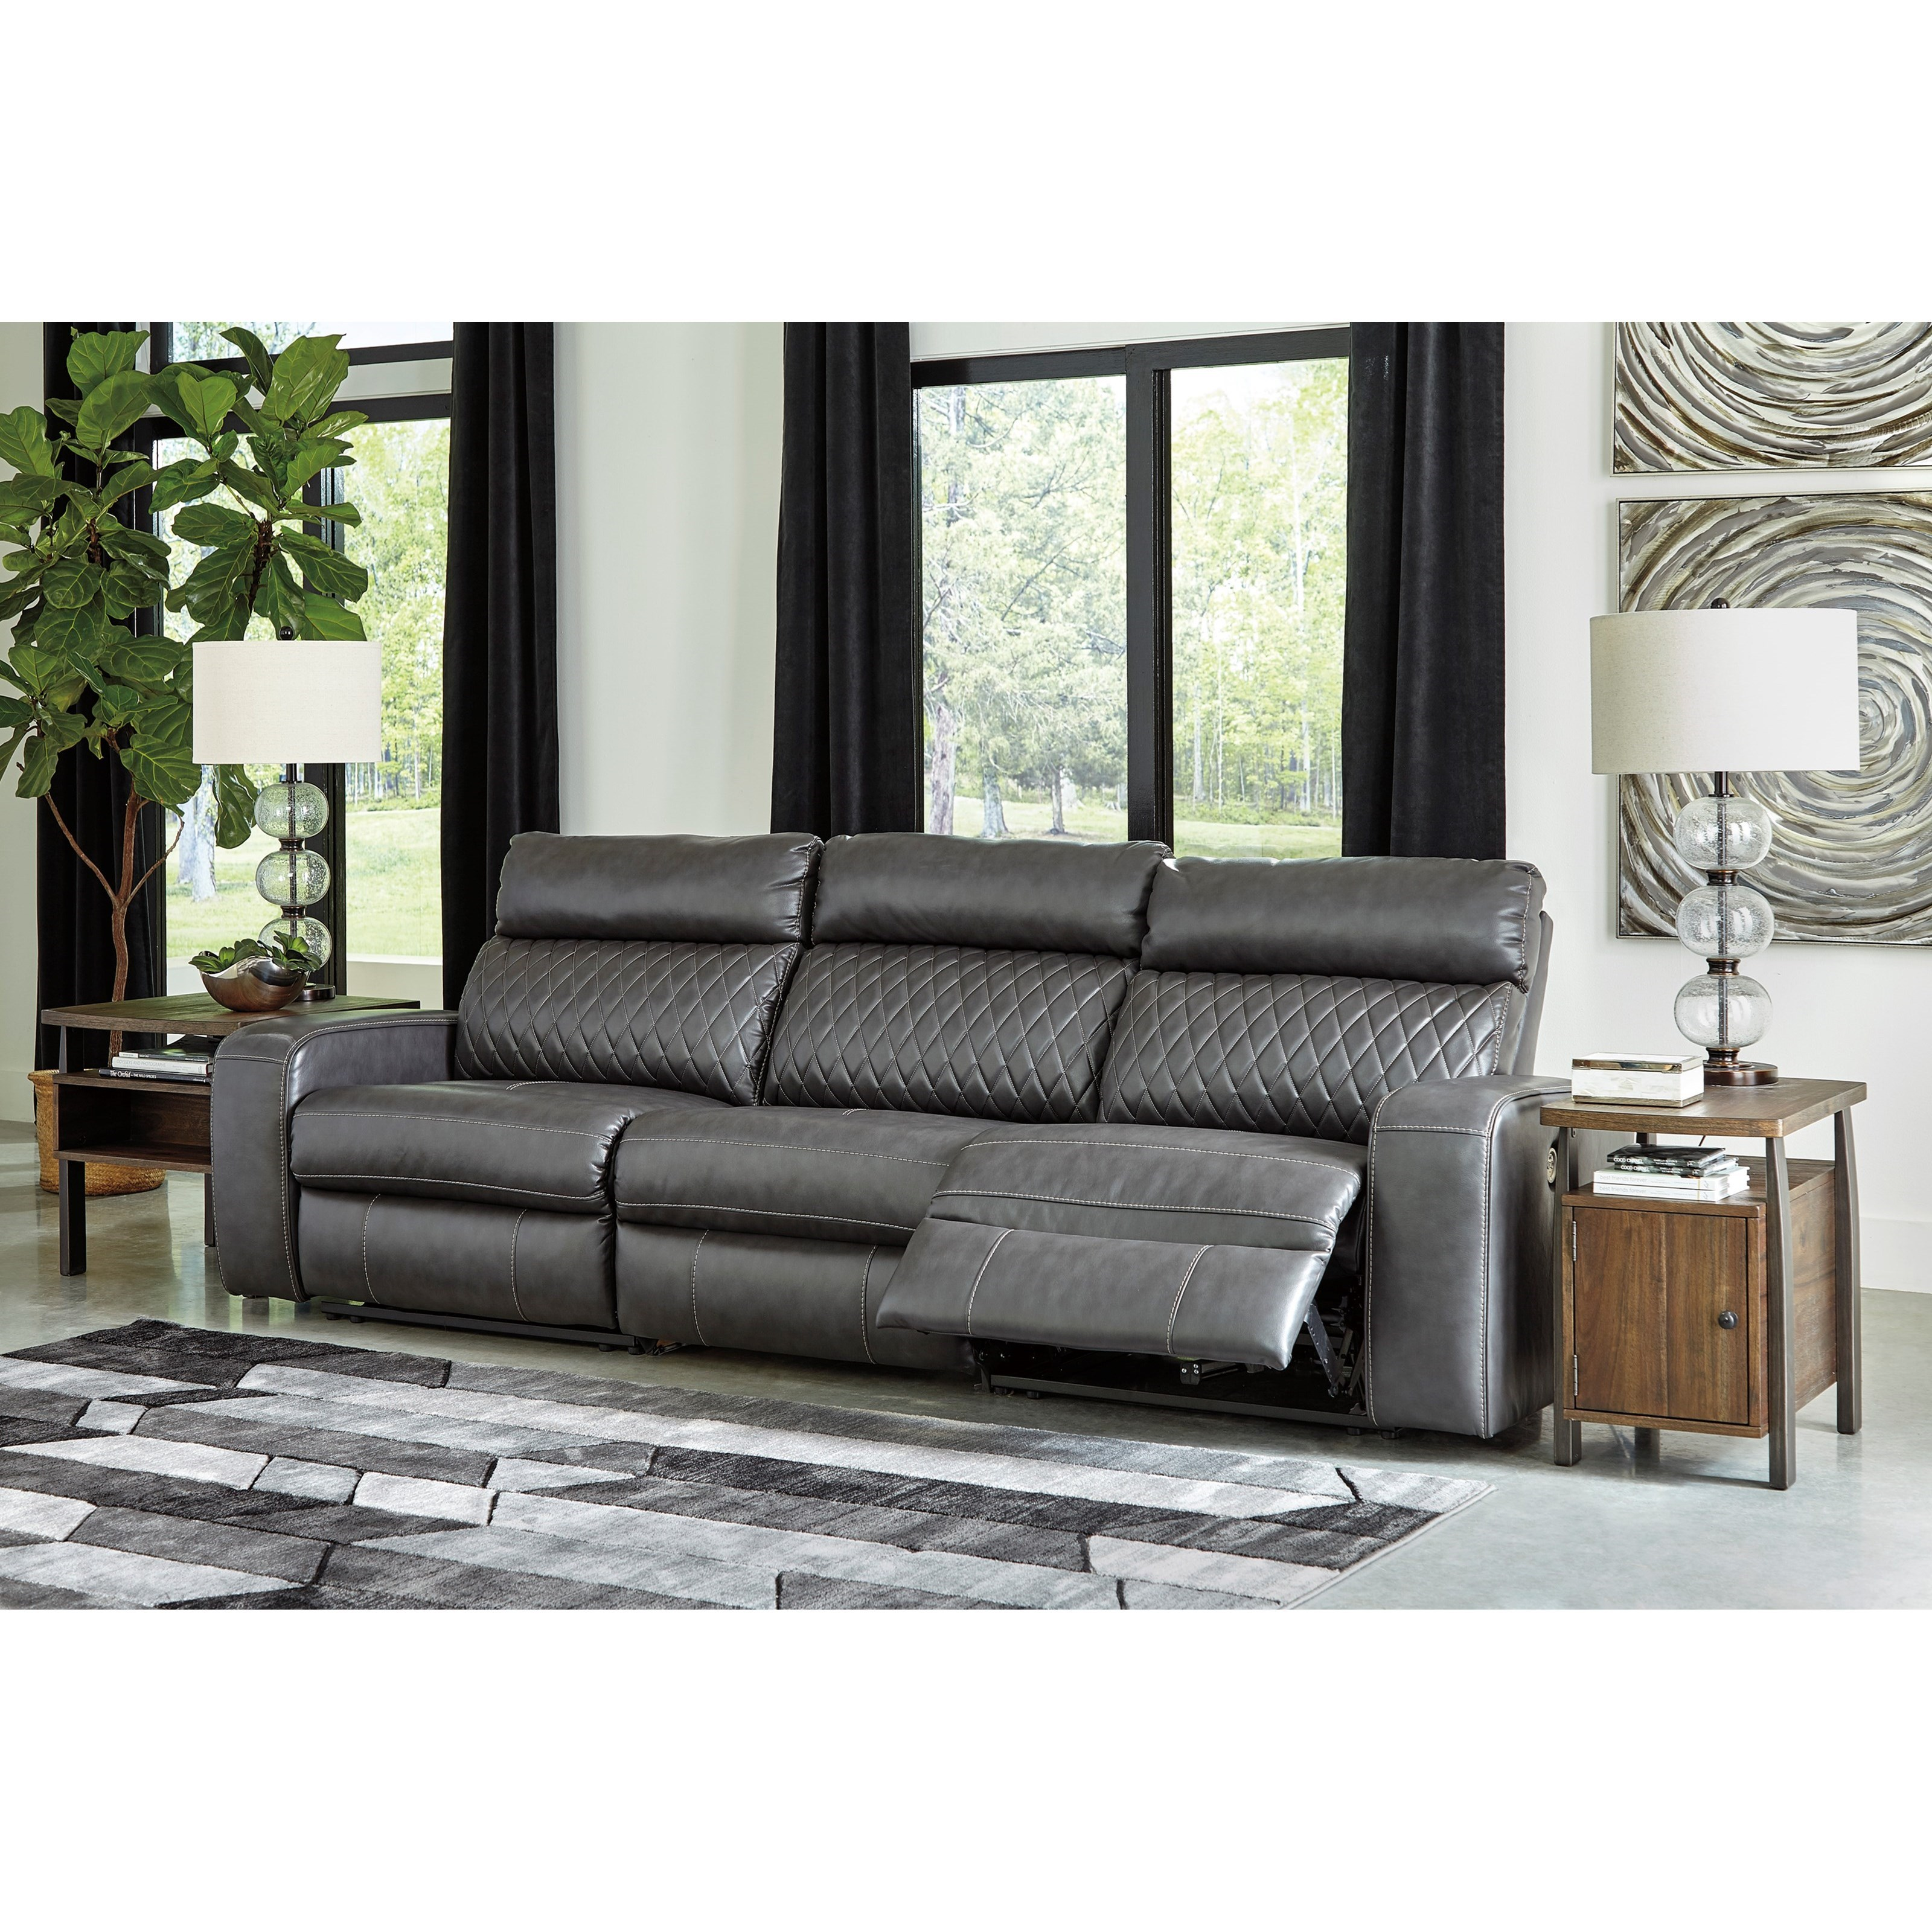 Transitional Style Living Room Furniture: Signature Design By Ashley Samperstone Transitional Power